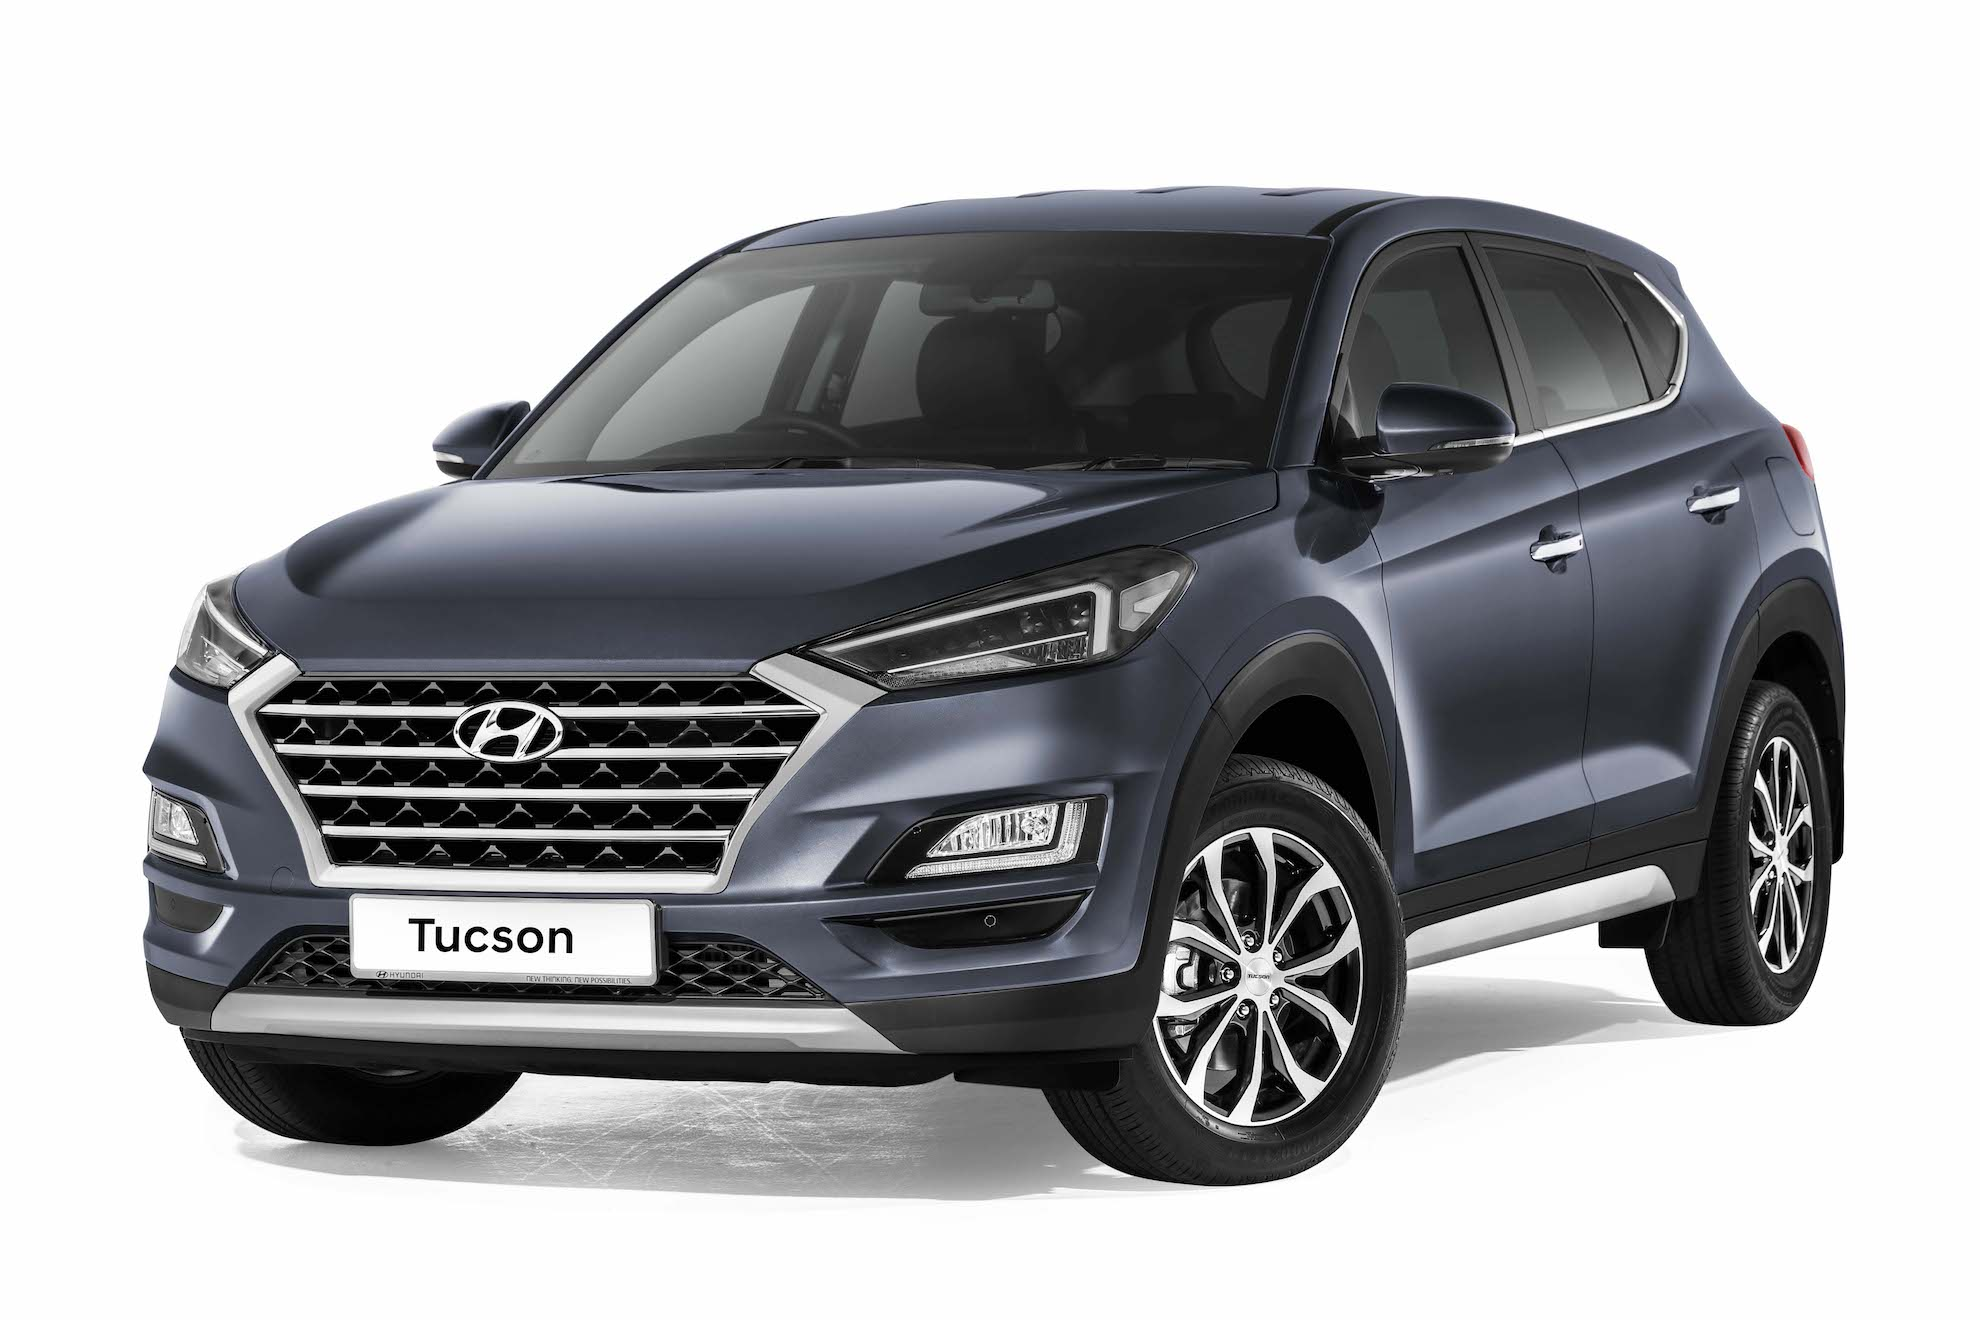 hyundai malaysia silently slips the new tucson into showrooms